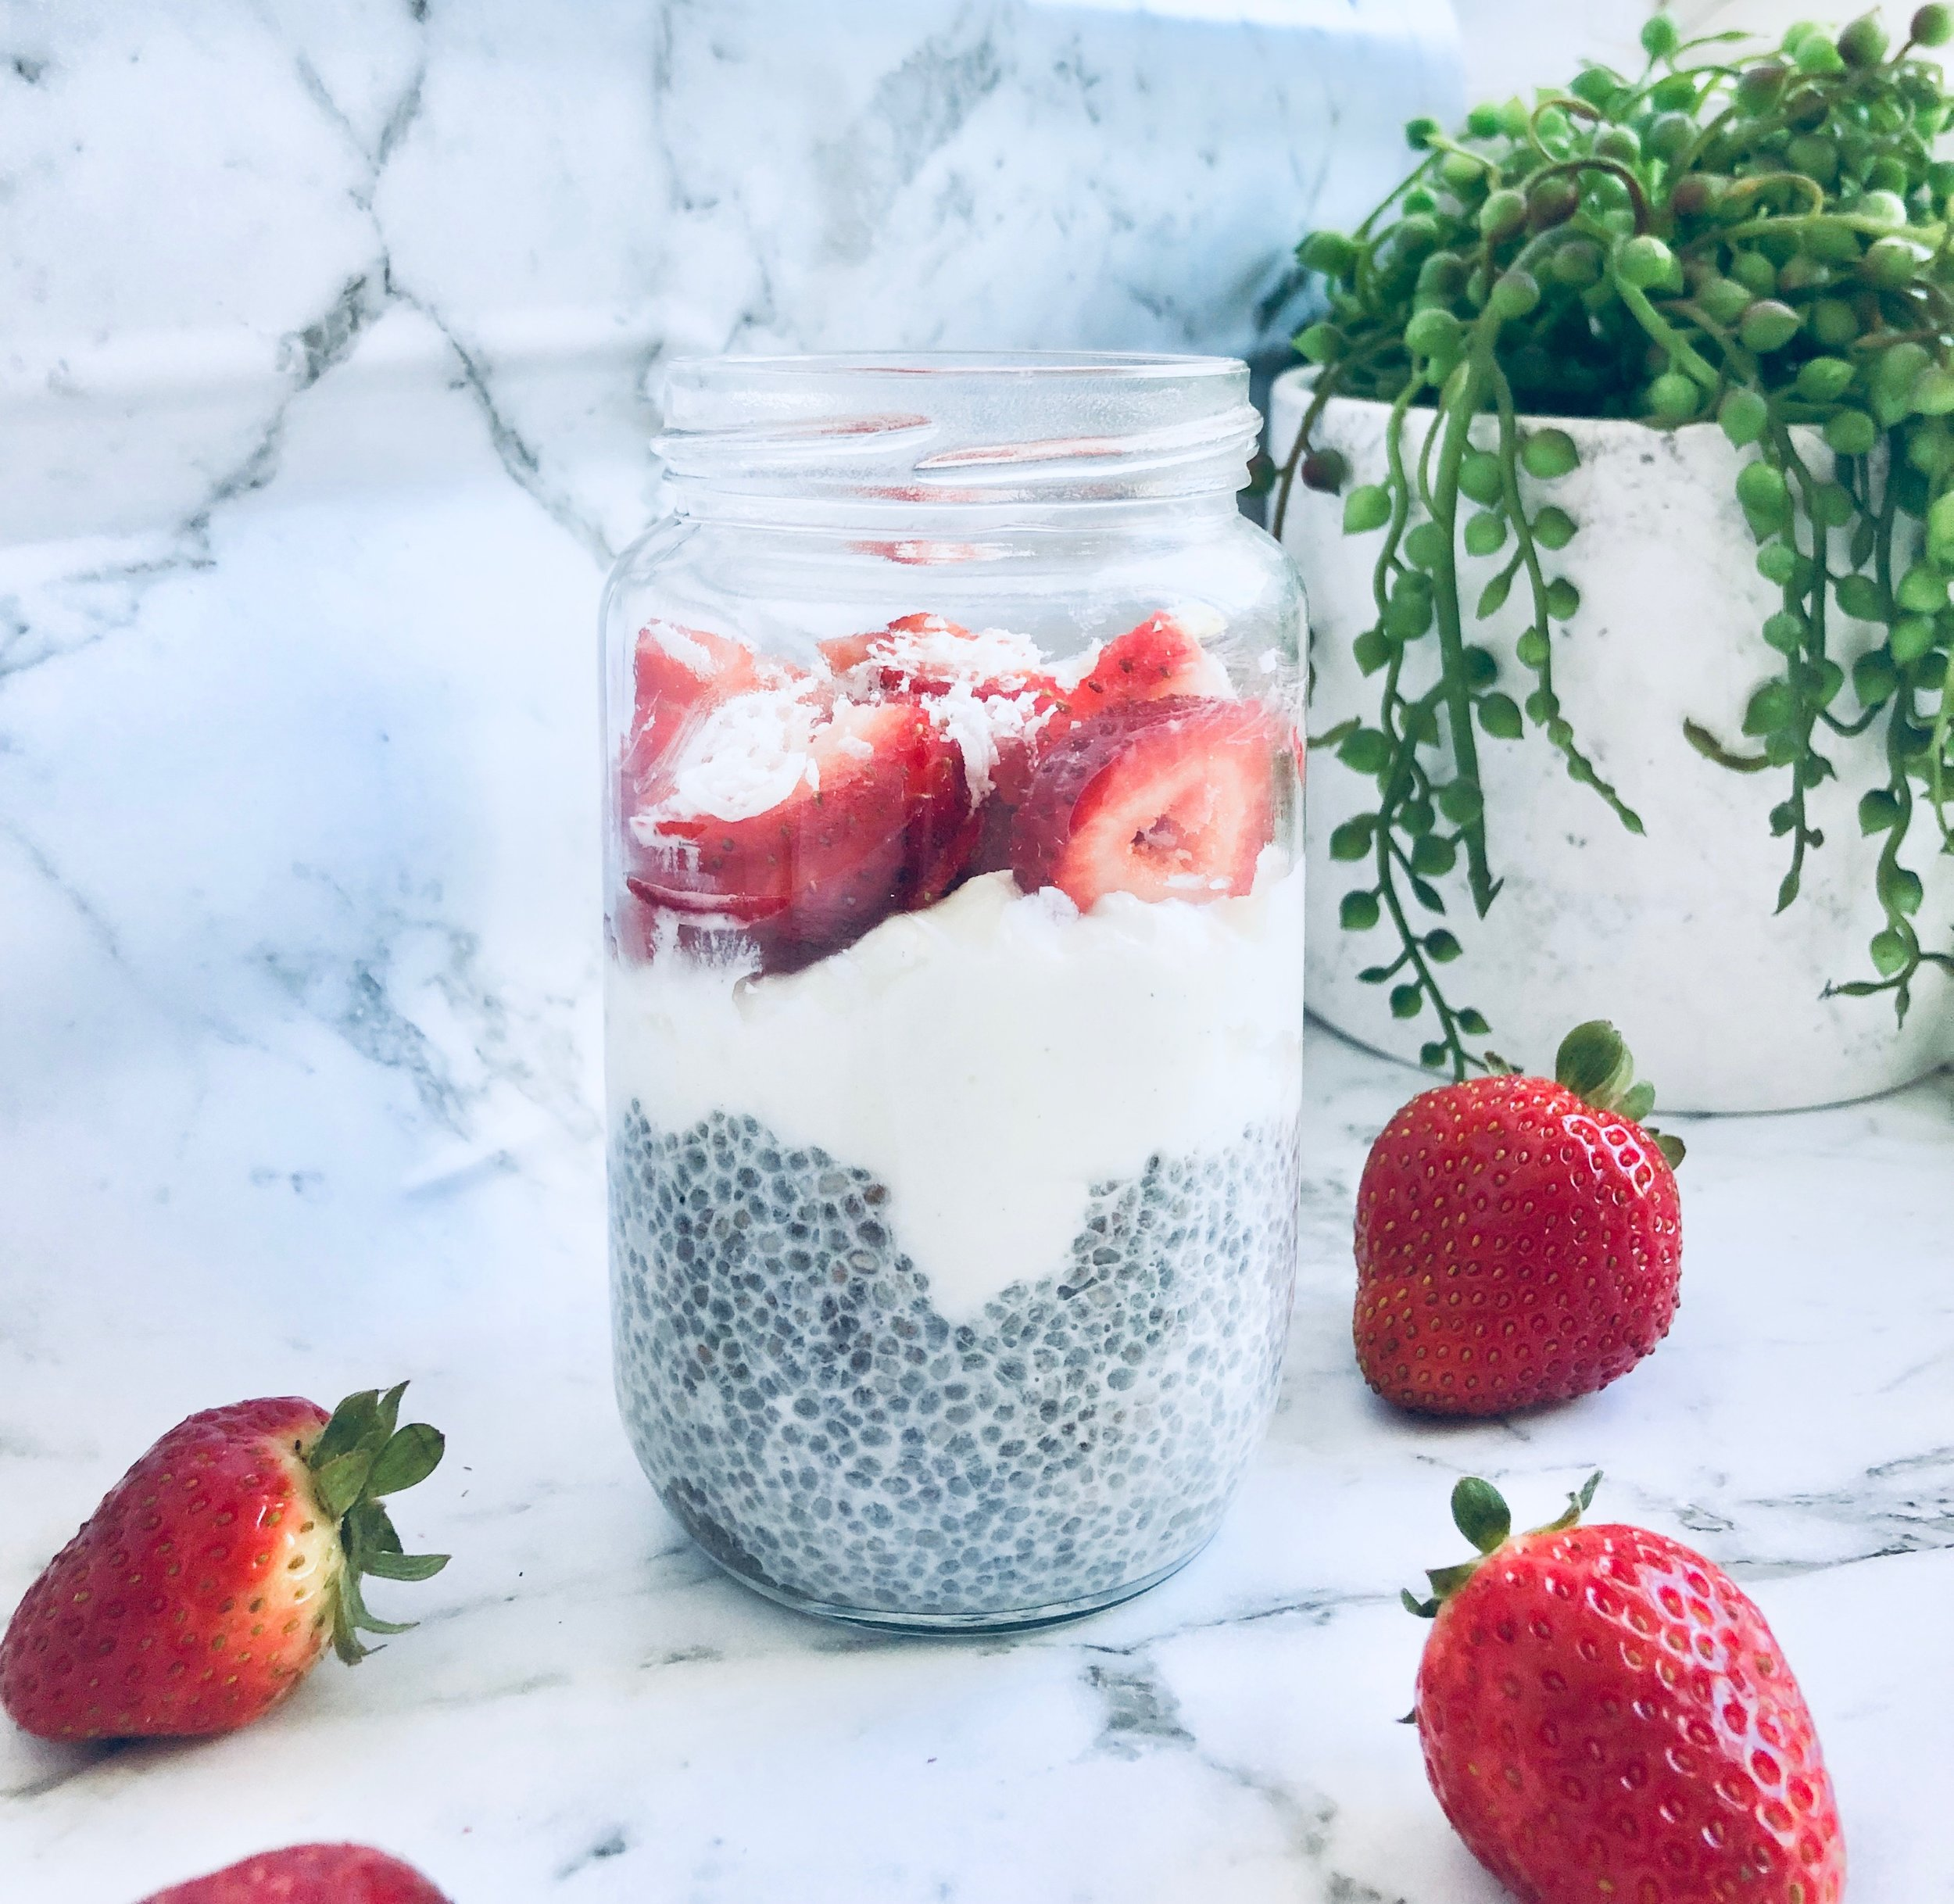 - Ingredients ½ cup chia seeds 2 tablespoons pure maple syrup or 4 - 6 drops of drops pure liquid stevia2 cup coconut milk½ cup strawberries, sliced Method Add the chia seeds, sweetener and coconut milk to a jars and stir. Place in the fridge to set. It's ready to go in just about 30 minutes, but you could leave it overnight if you want. Remove from fridge, top off with fresh strawberries, a sprinkle of coconut flakes and a scoop of coyo.Serves 4